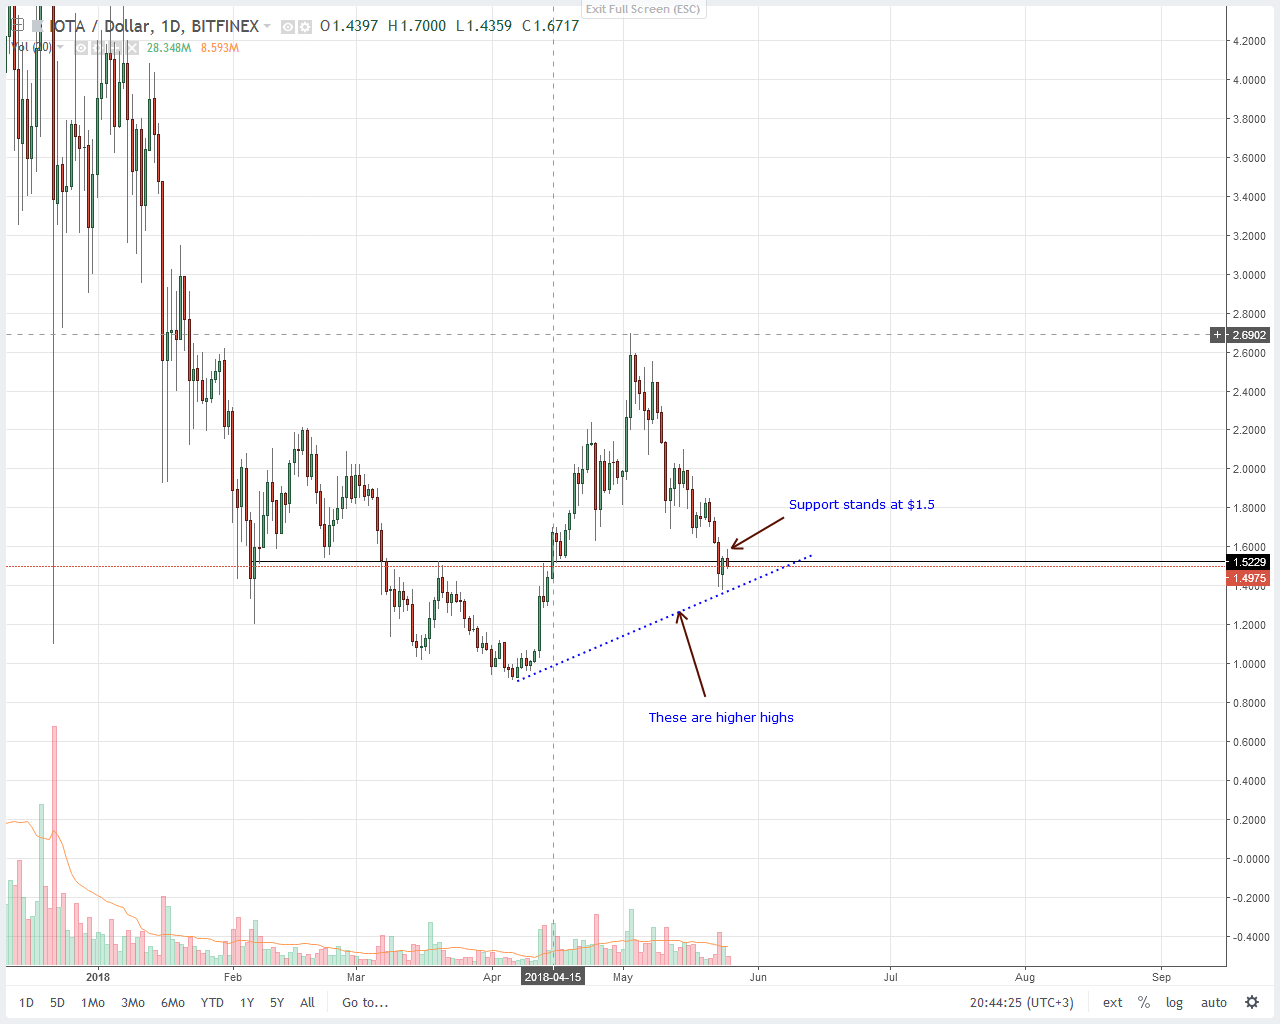 IOTA (IOT) Price Analysis